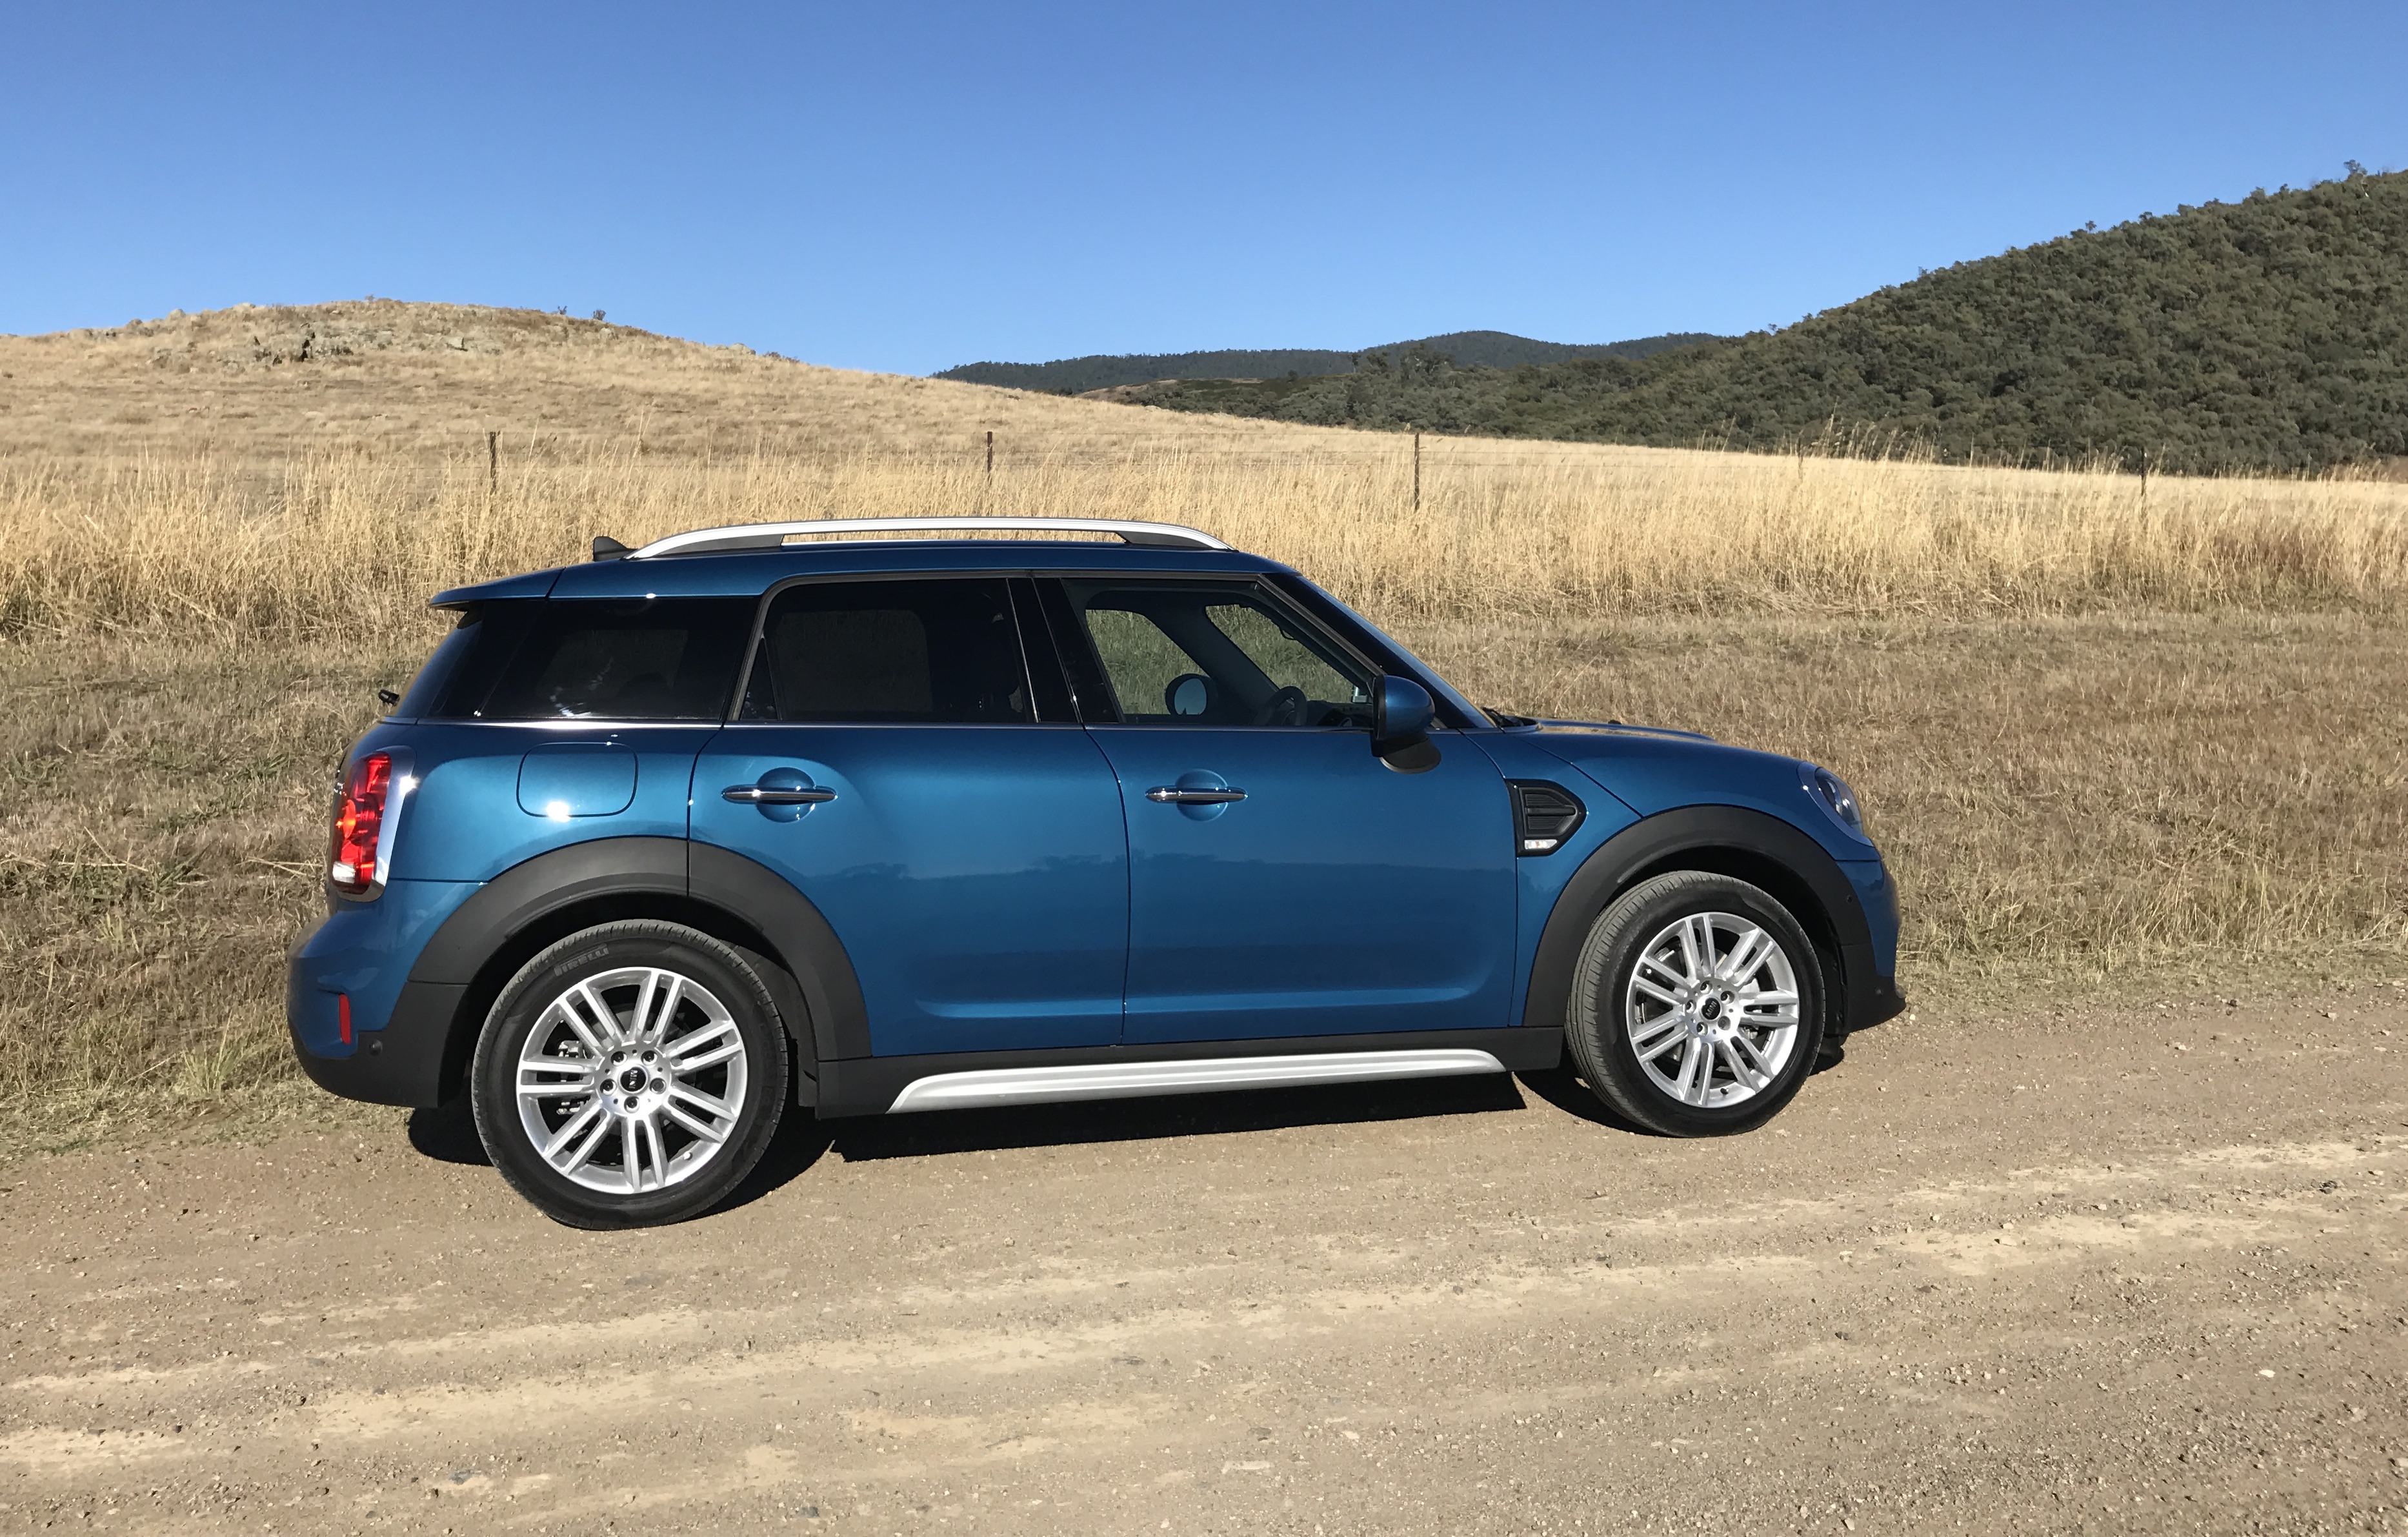 MINI Cooper S Countryman hd specifications